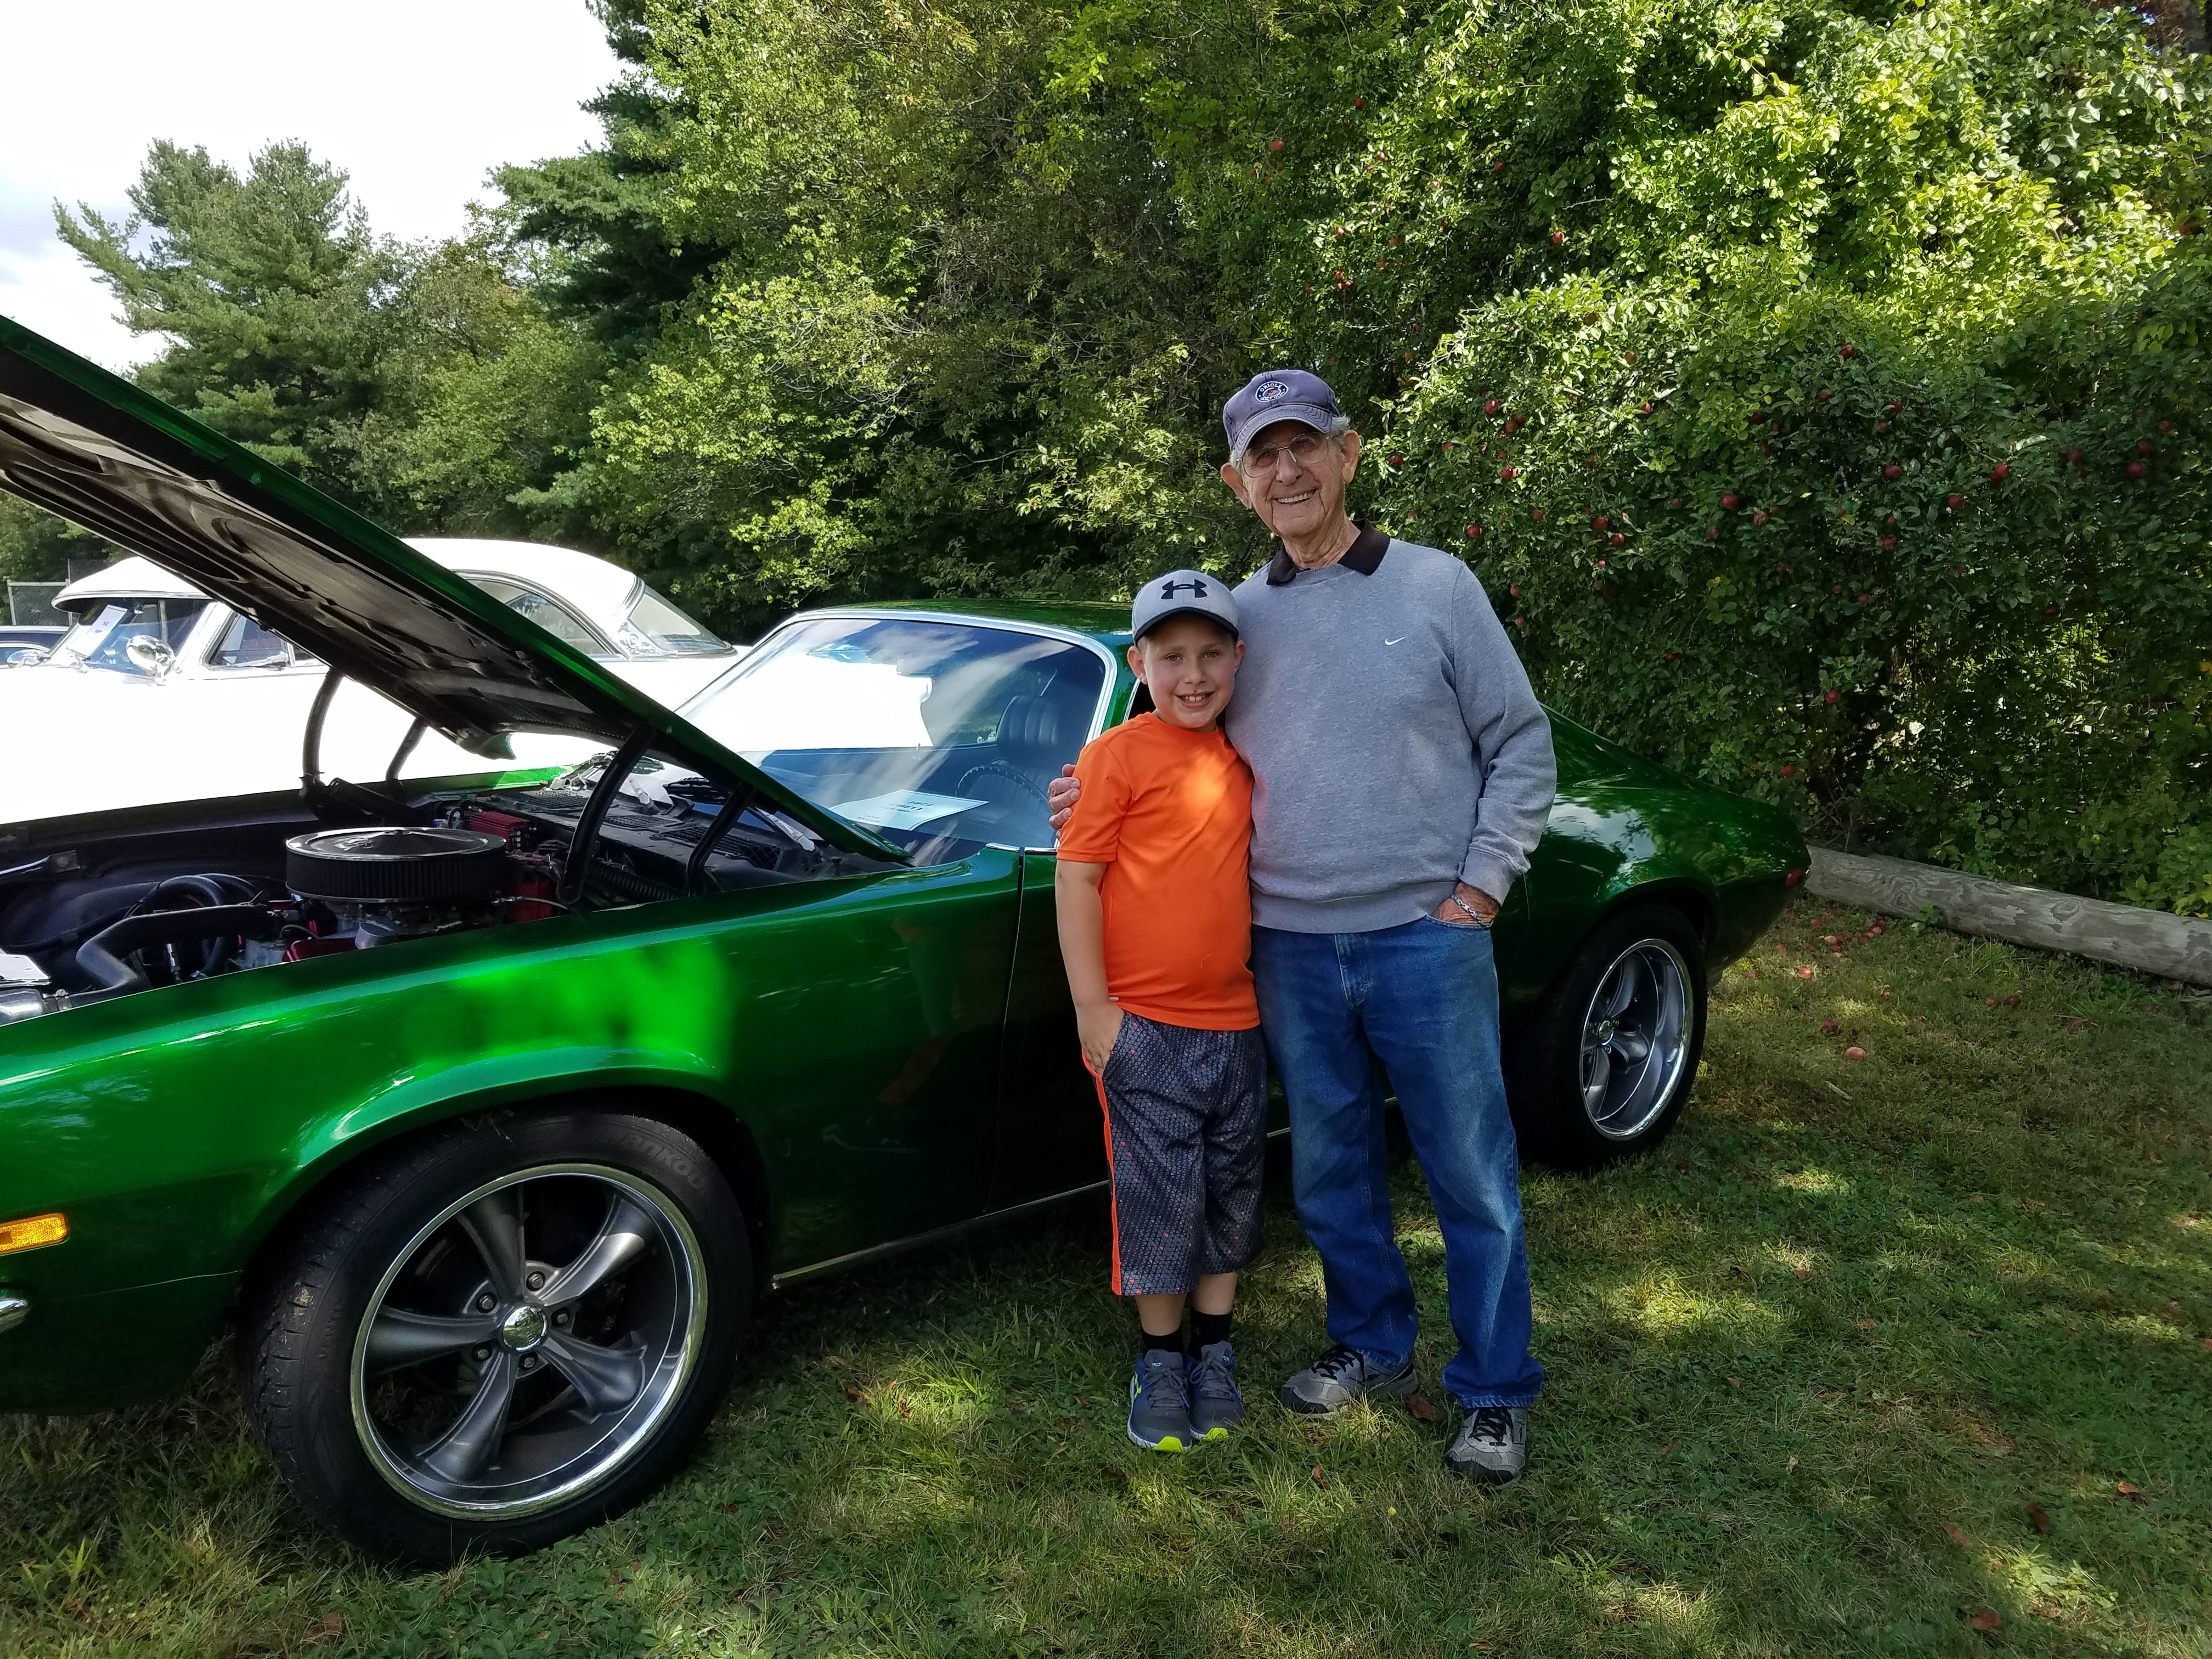 Campers' Car Show